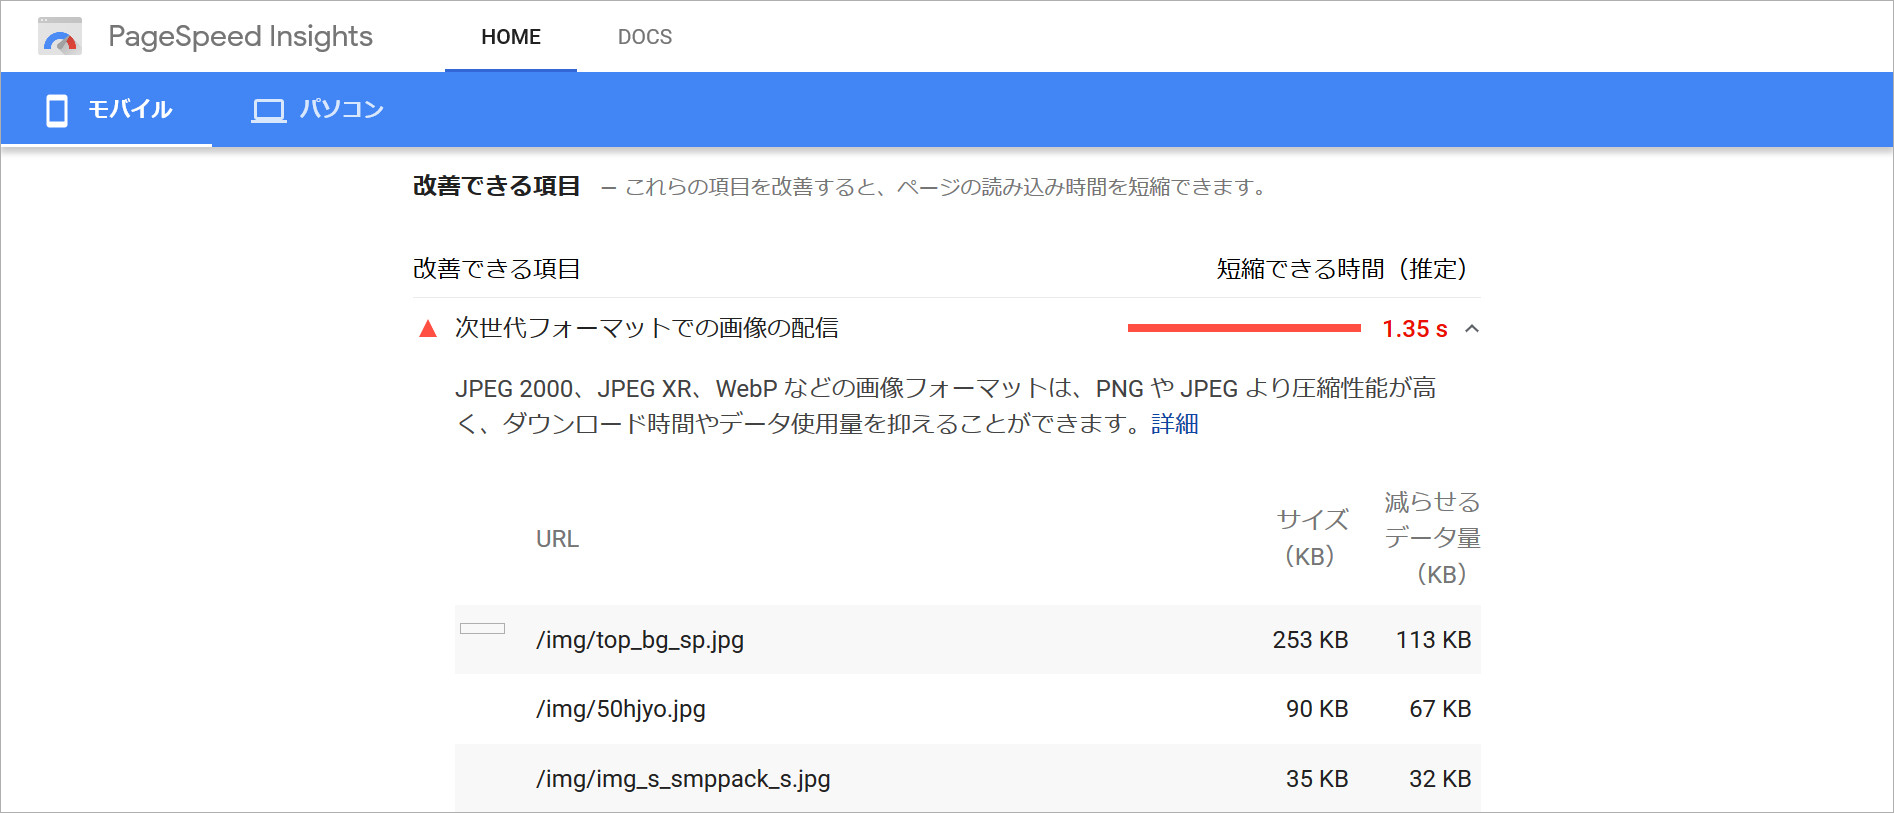 【WebP】PageSpeed Insightsでの測定結果